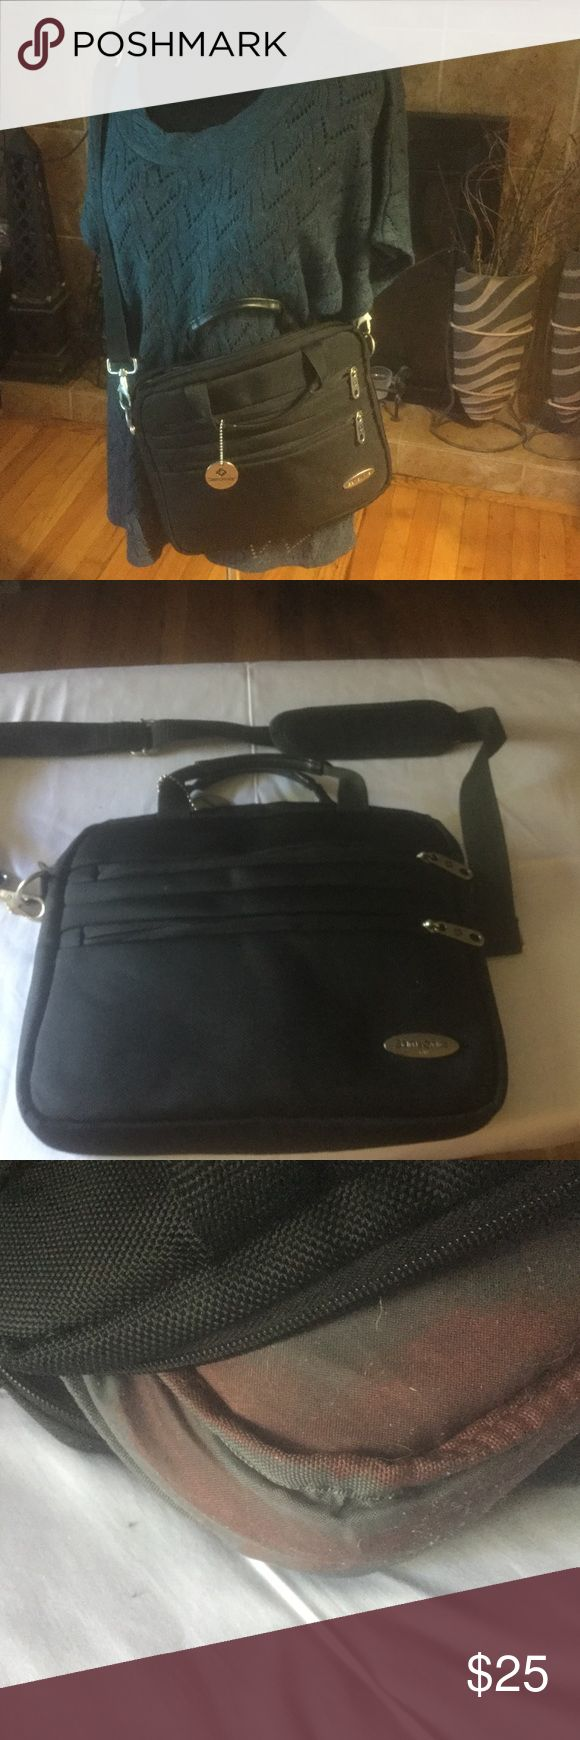 Samsonite laptop/IPad bag Samsonite laptop/iPad bag in enough for iPad or small laptop with multiple pockets and removable shoulder strap. There is a stain on the inside Samsonite Bags Laptop Bags